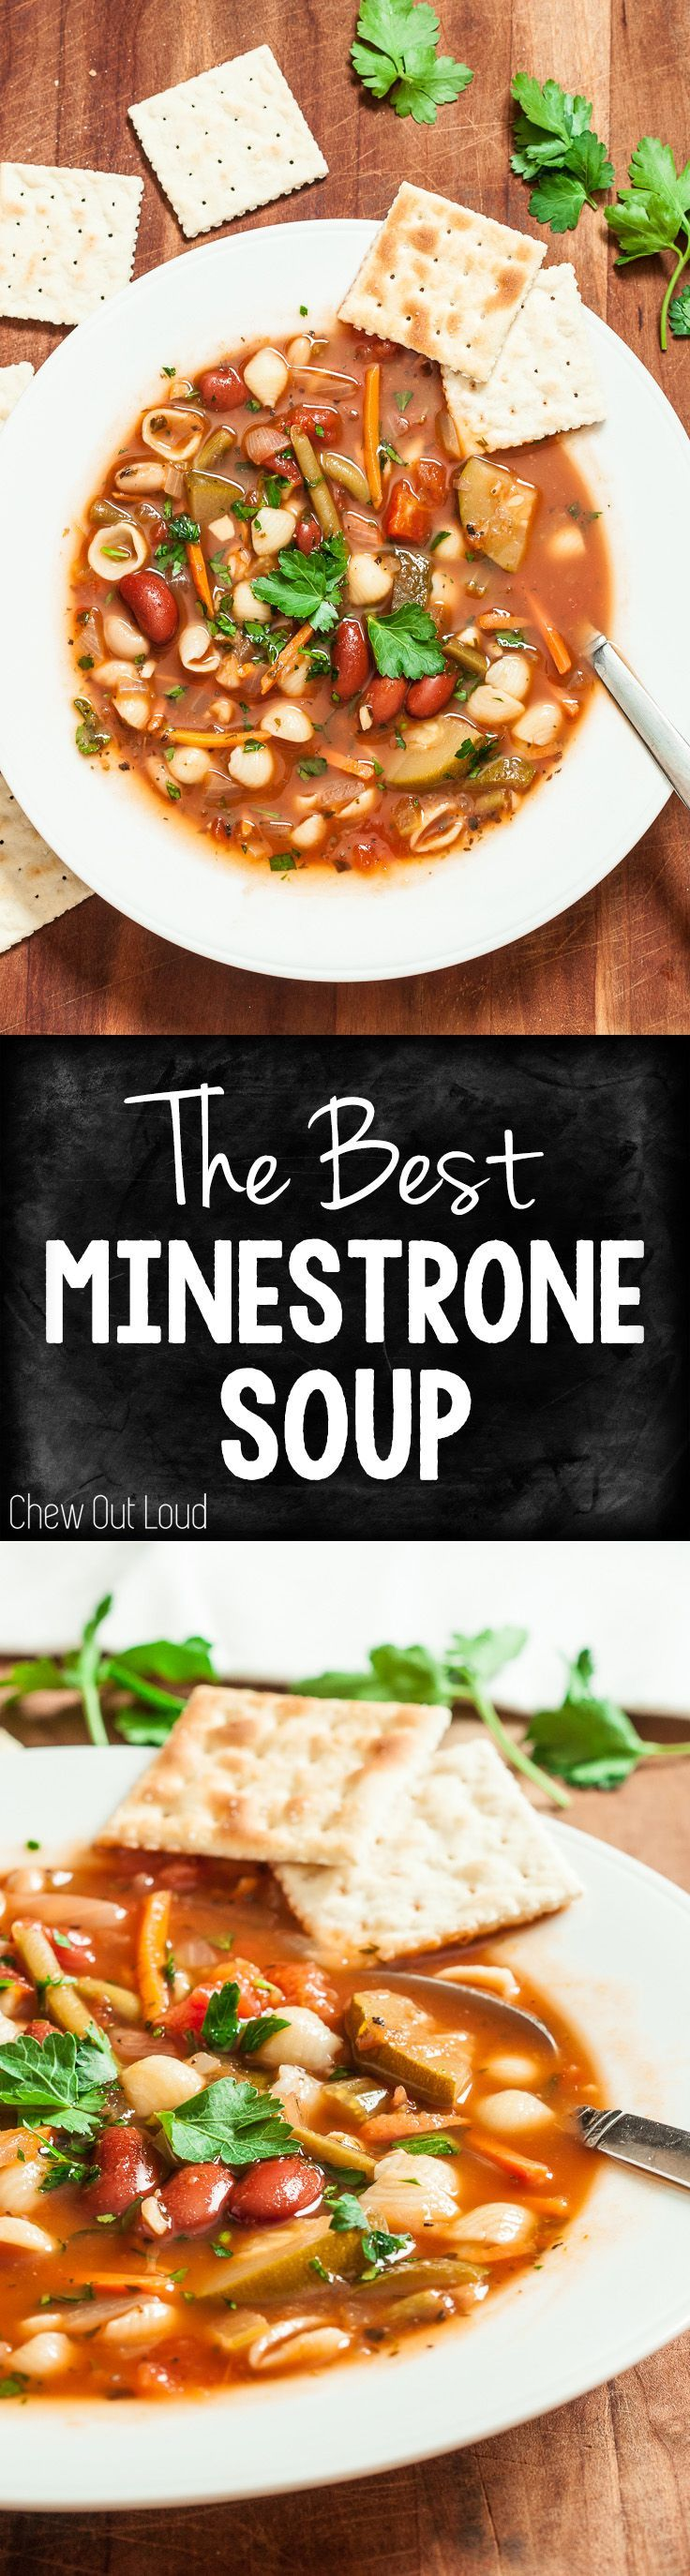 This homemade Minestrone Soup is way better than restaurant versions. It's…